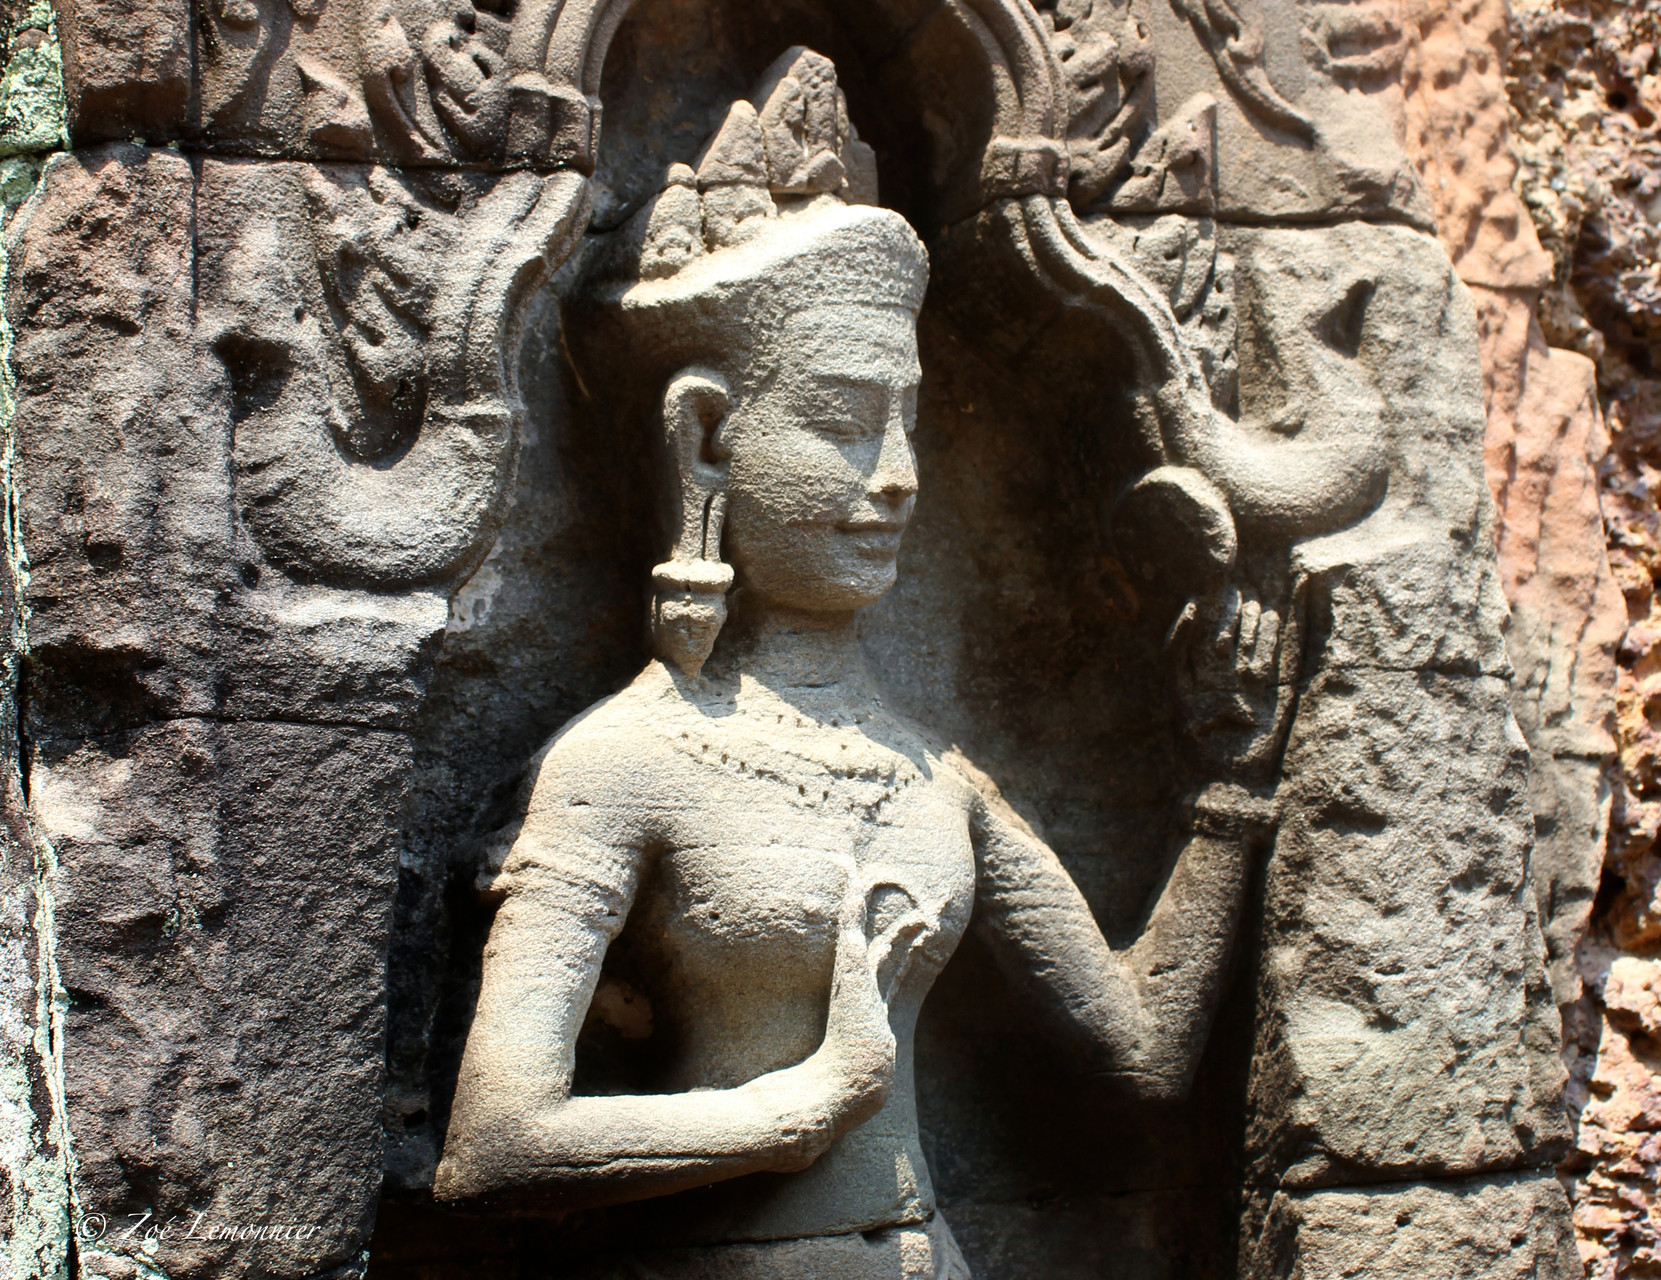 Sculptur in the khmer city of Angkor, Cambodia